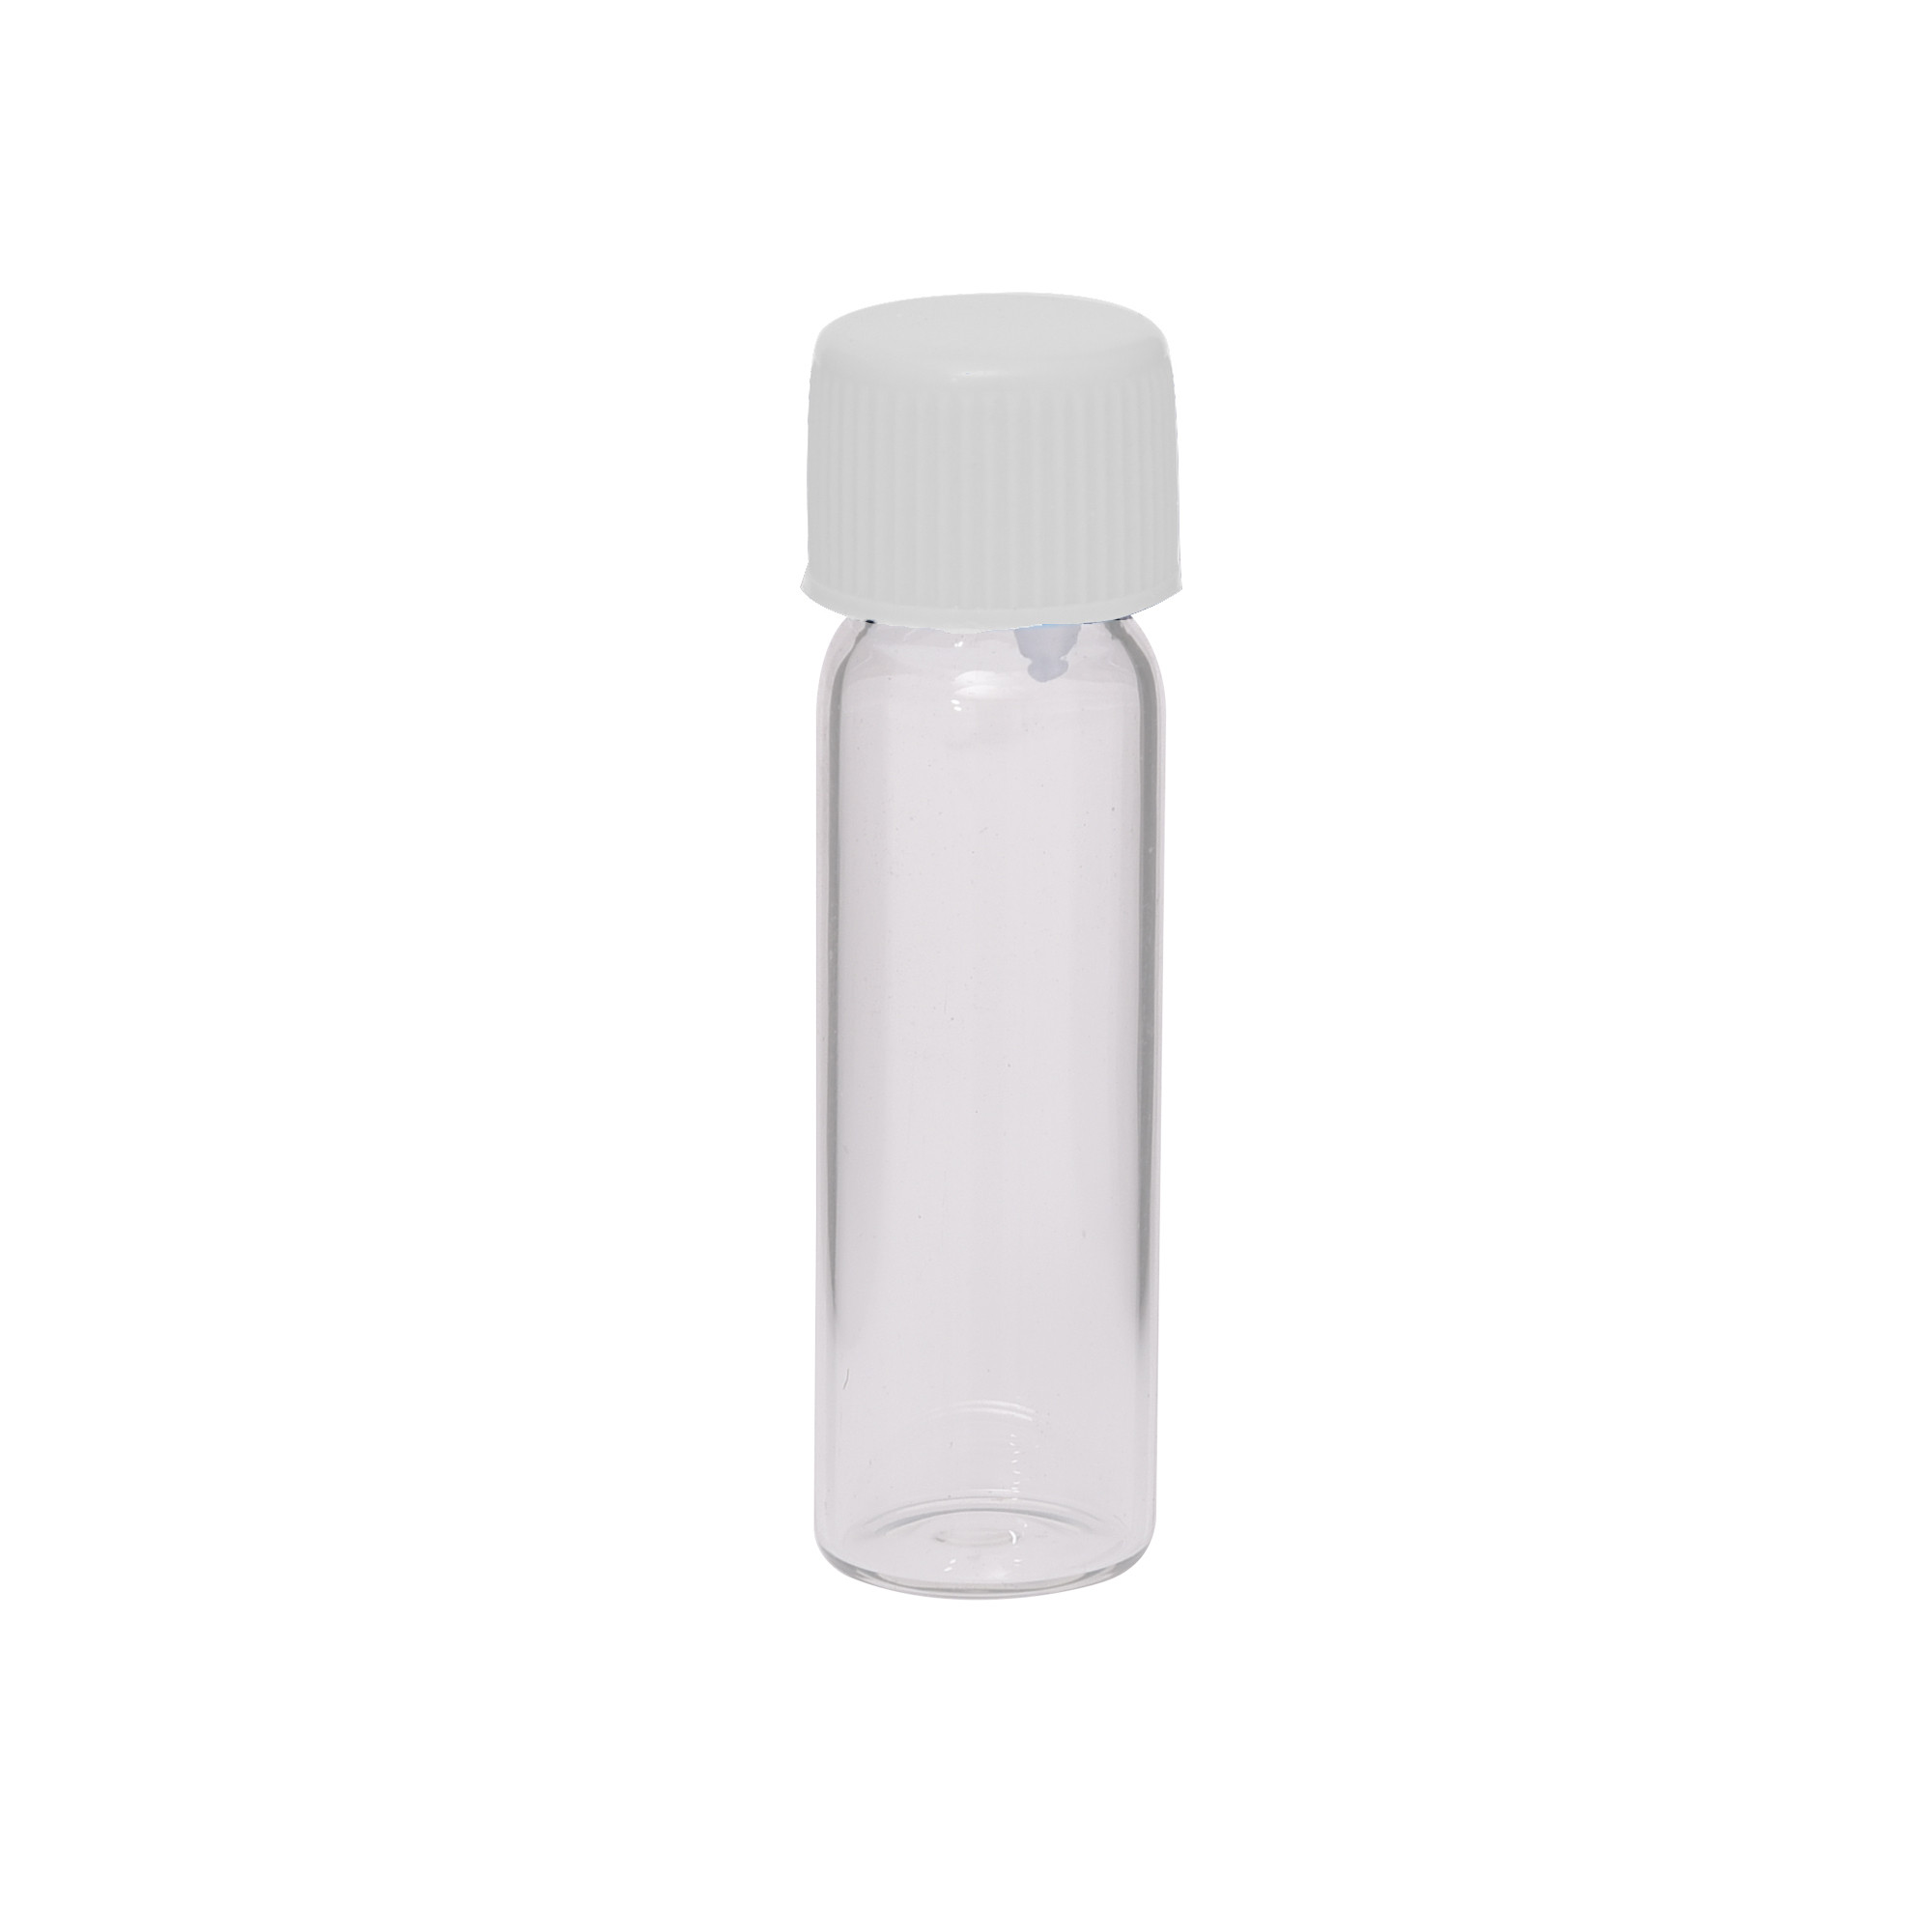 Empty Glass Vials - 5 ml - 1 Dram - White Color Cap